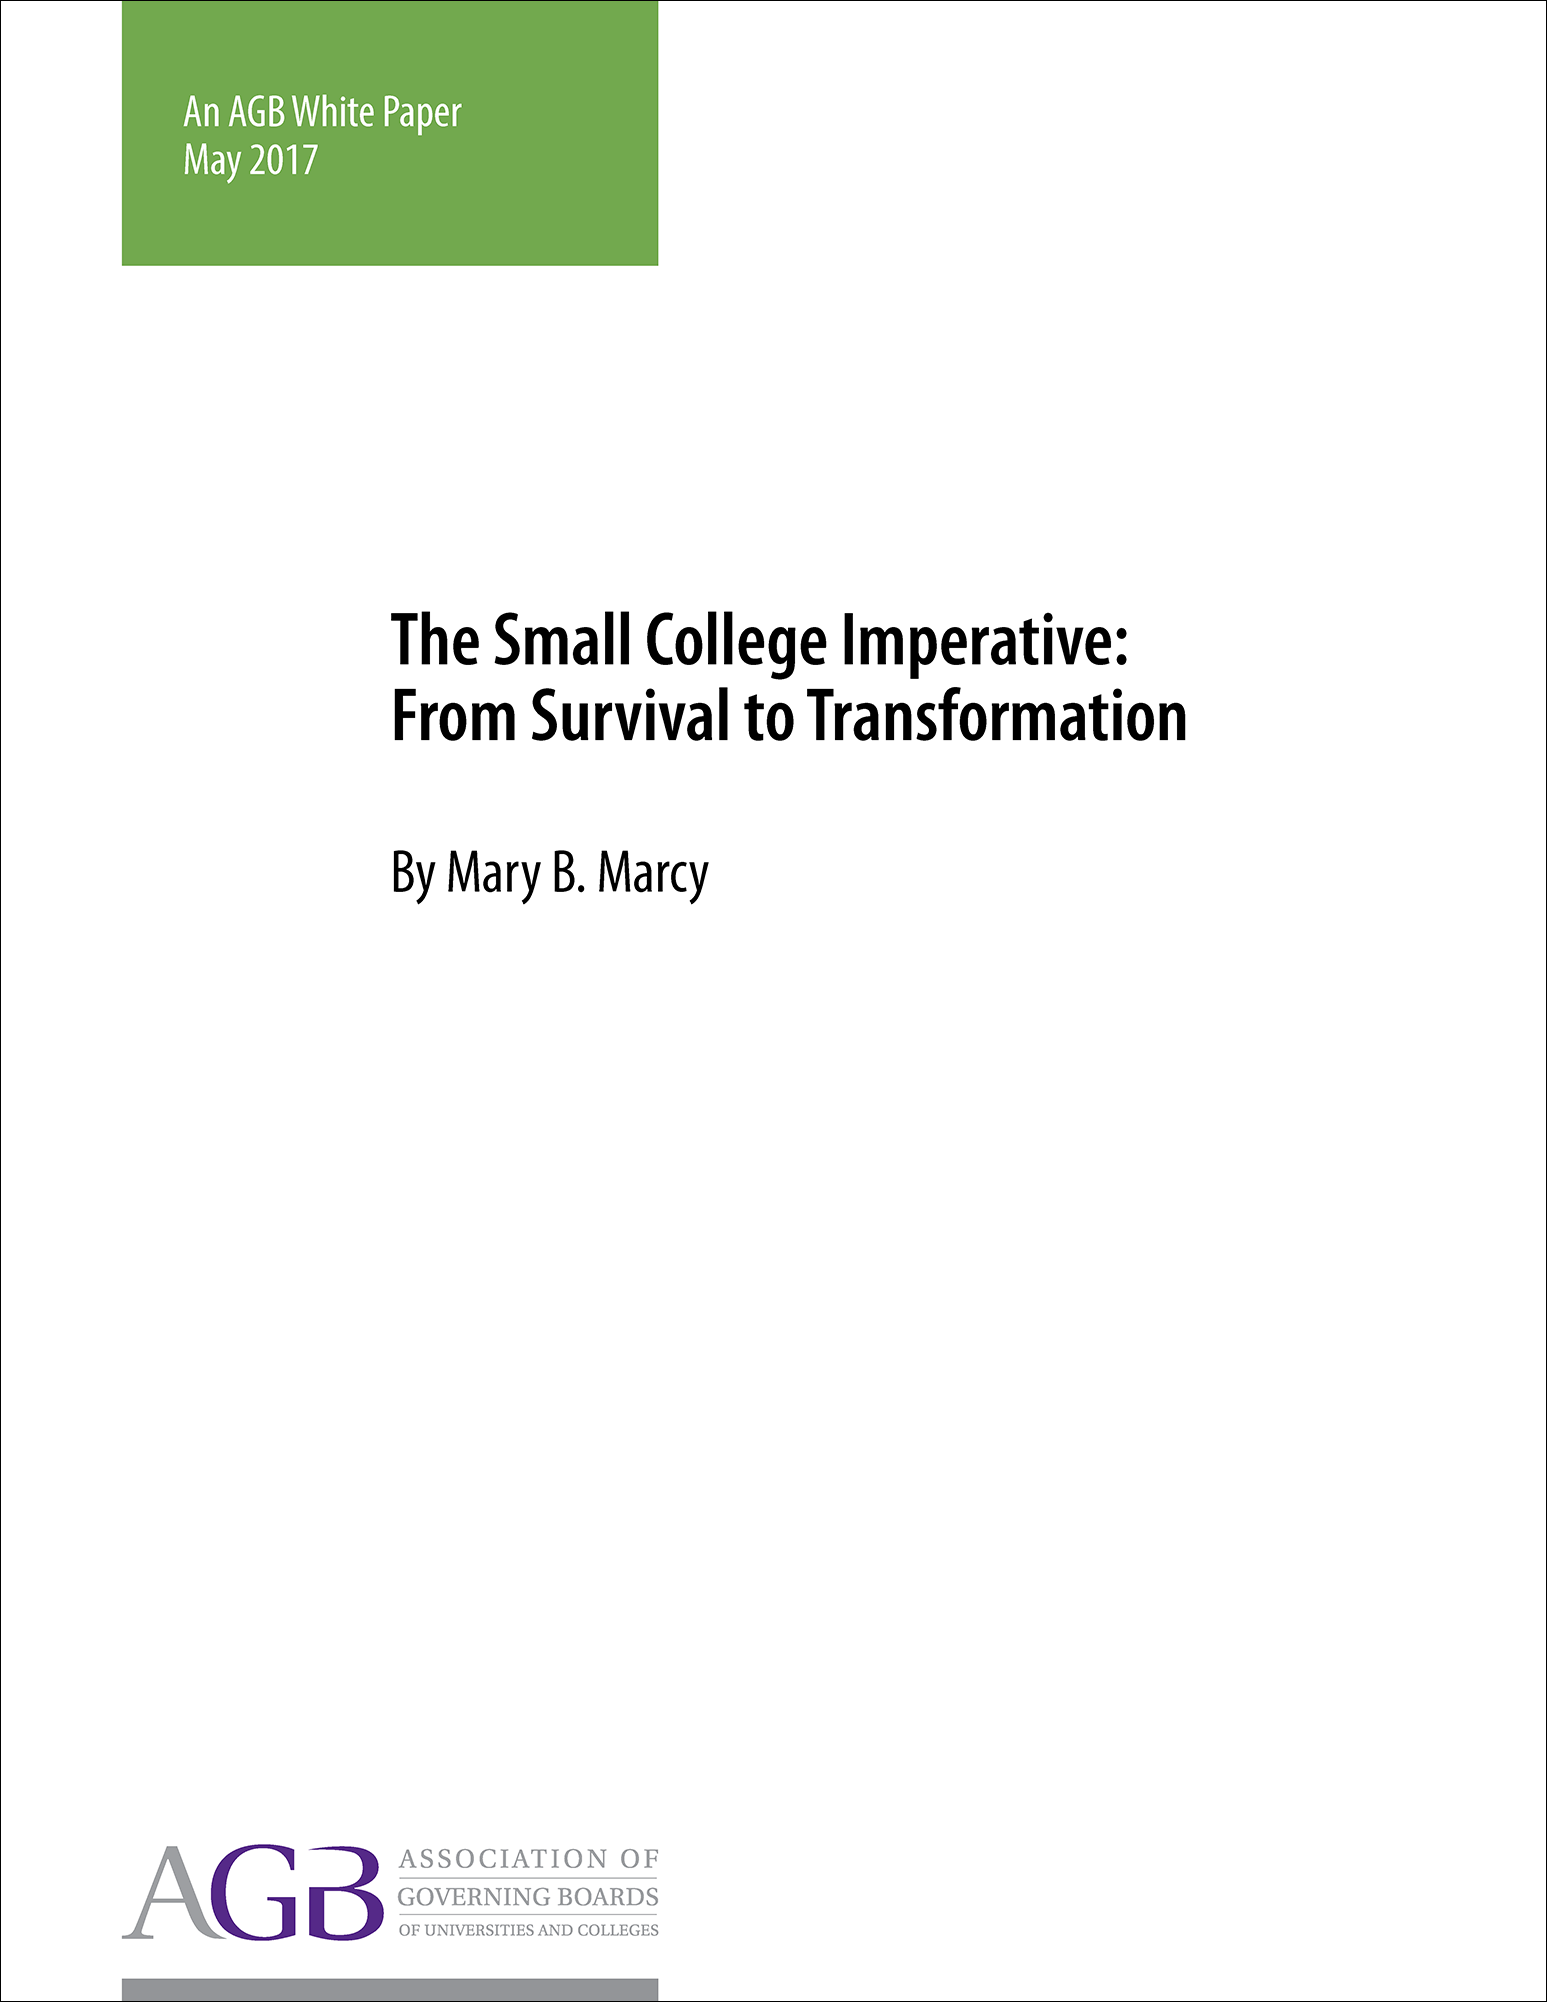 The Small College Imperative: From Survival to Transformation